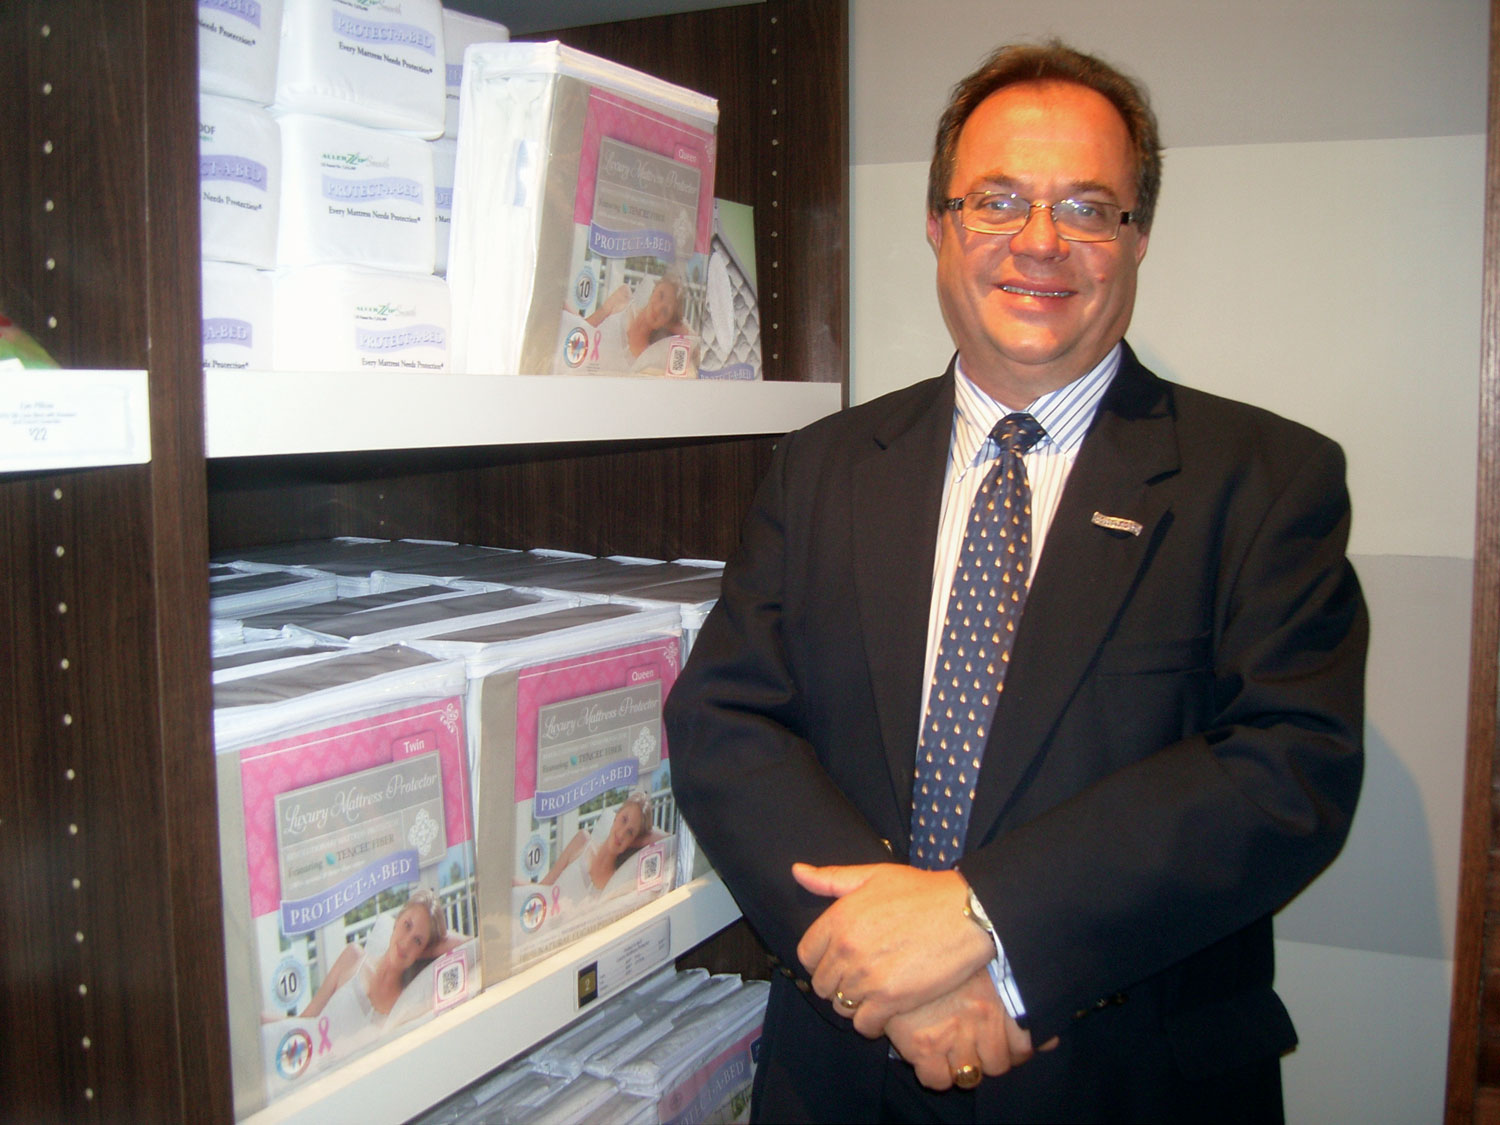 James Bell of Protect-A-Bed stands with a display of his company's mattress protectors at the store.